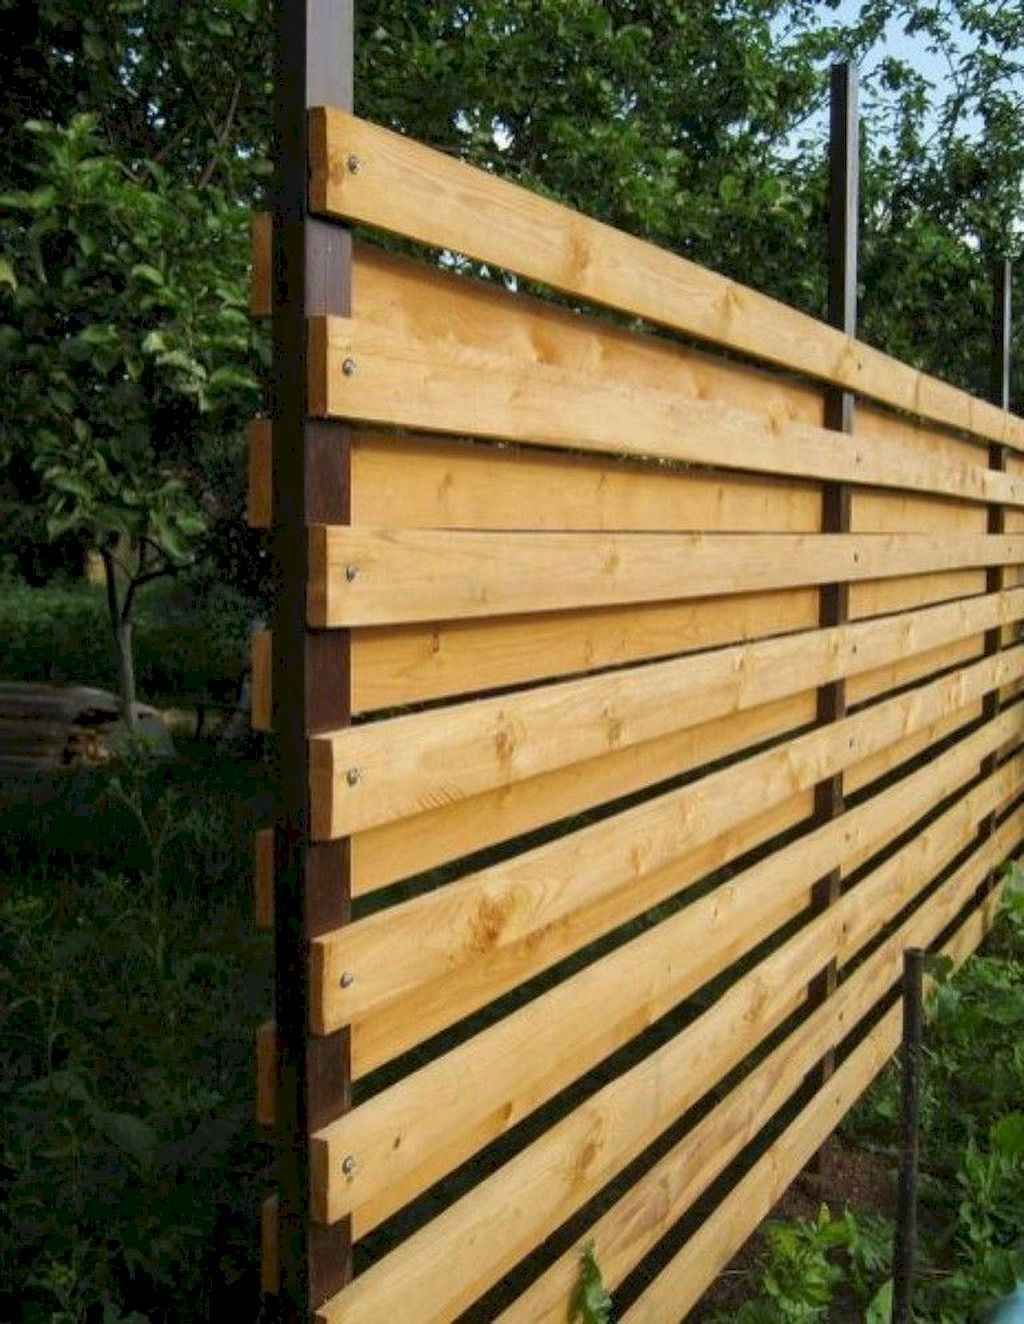 Privacy Fence Ideas Do You Need A Fencing That Does Not Make You Damaged Learn Ways To Develop A Fence Privacy Fence Designs Diy Privacy Fence Fence Design